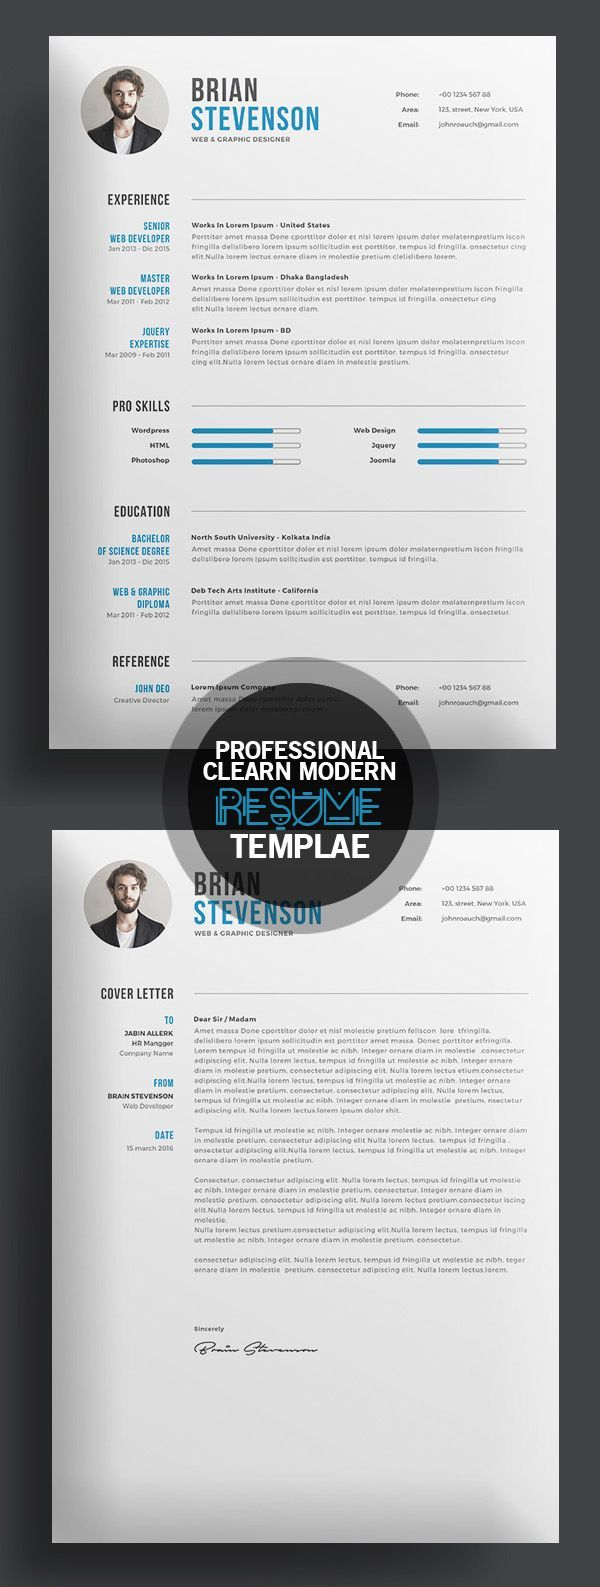 38 best portfolio images on Pinterest | Page layout, Cv template and ...